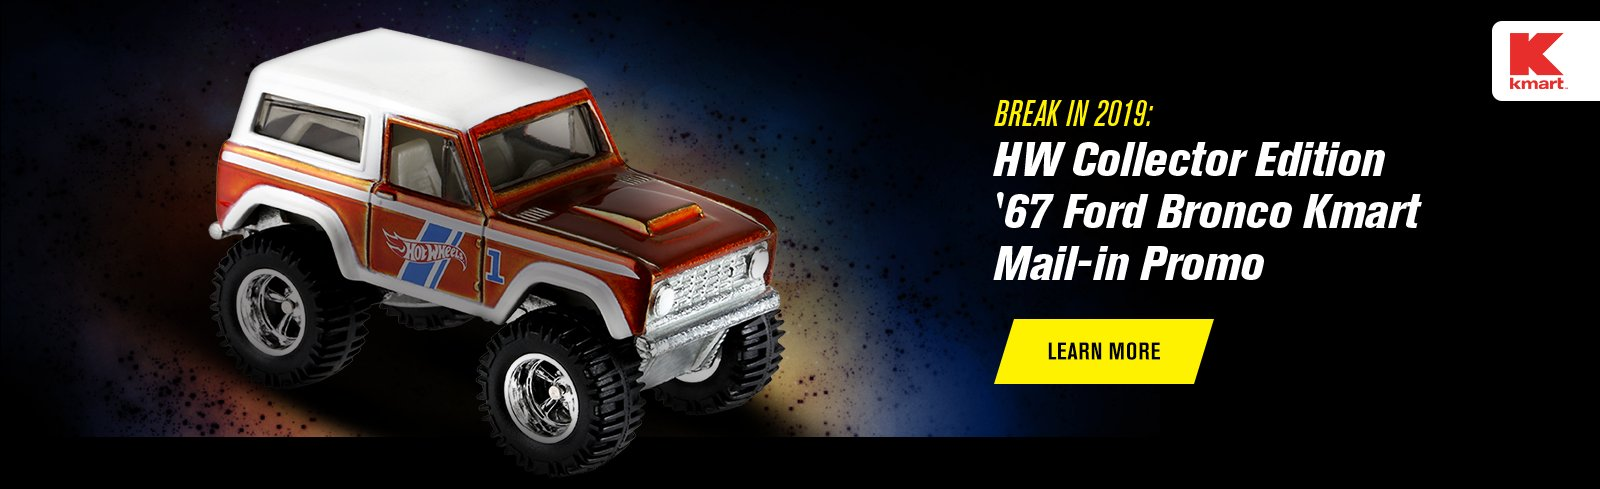 Break in 2019: HW Collector Edition '67 Ford Bronco Kmart Mail-in Promo